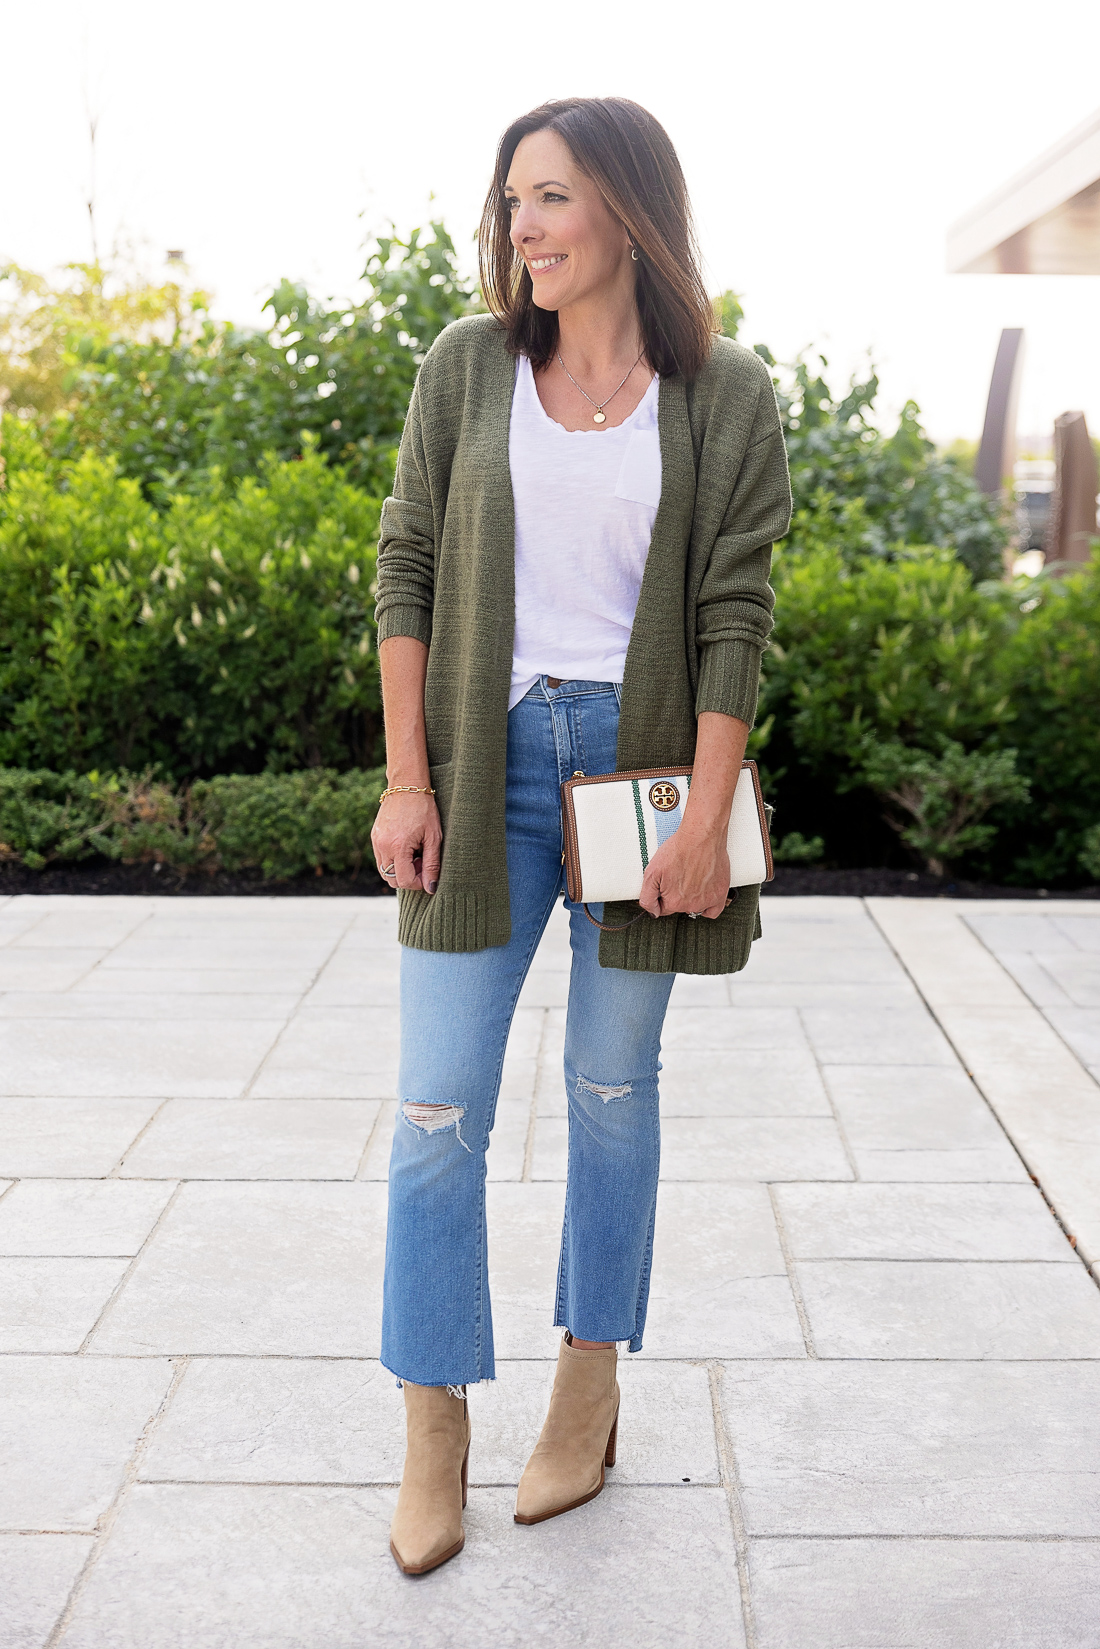 What to Wear with Light Wash Jeans: Contrasting Colors